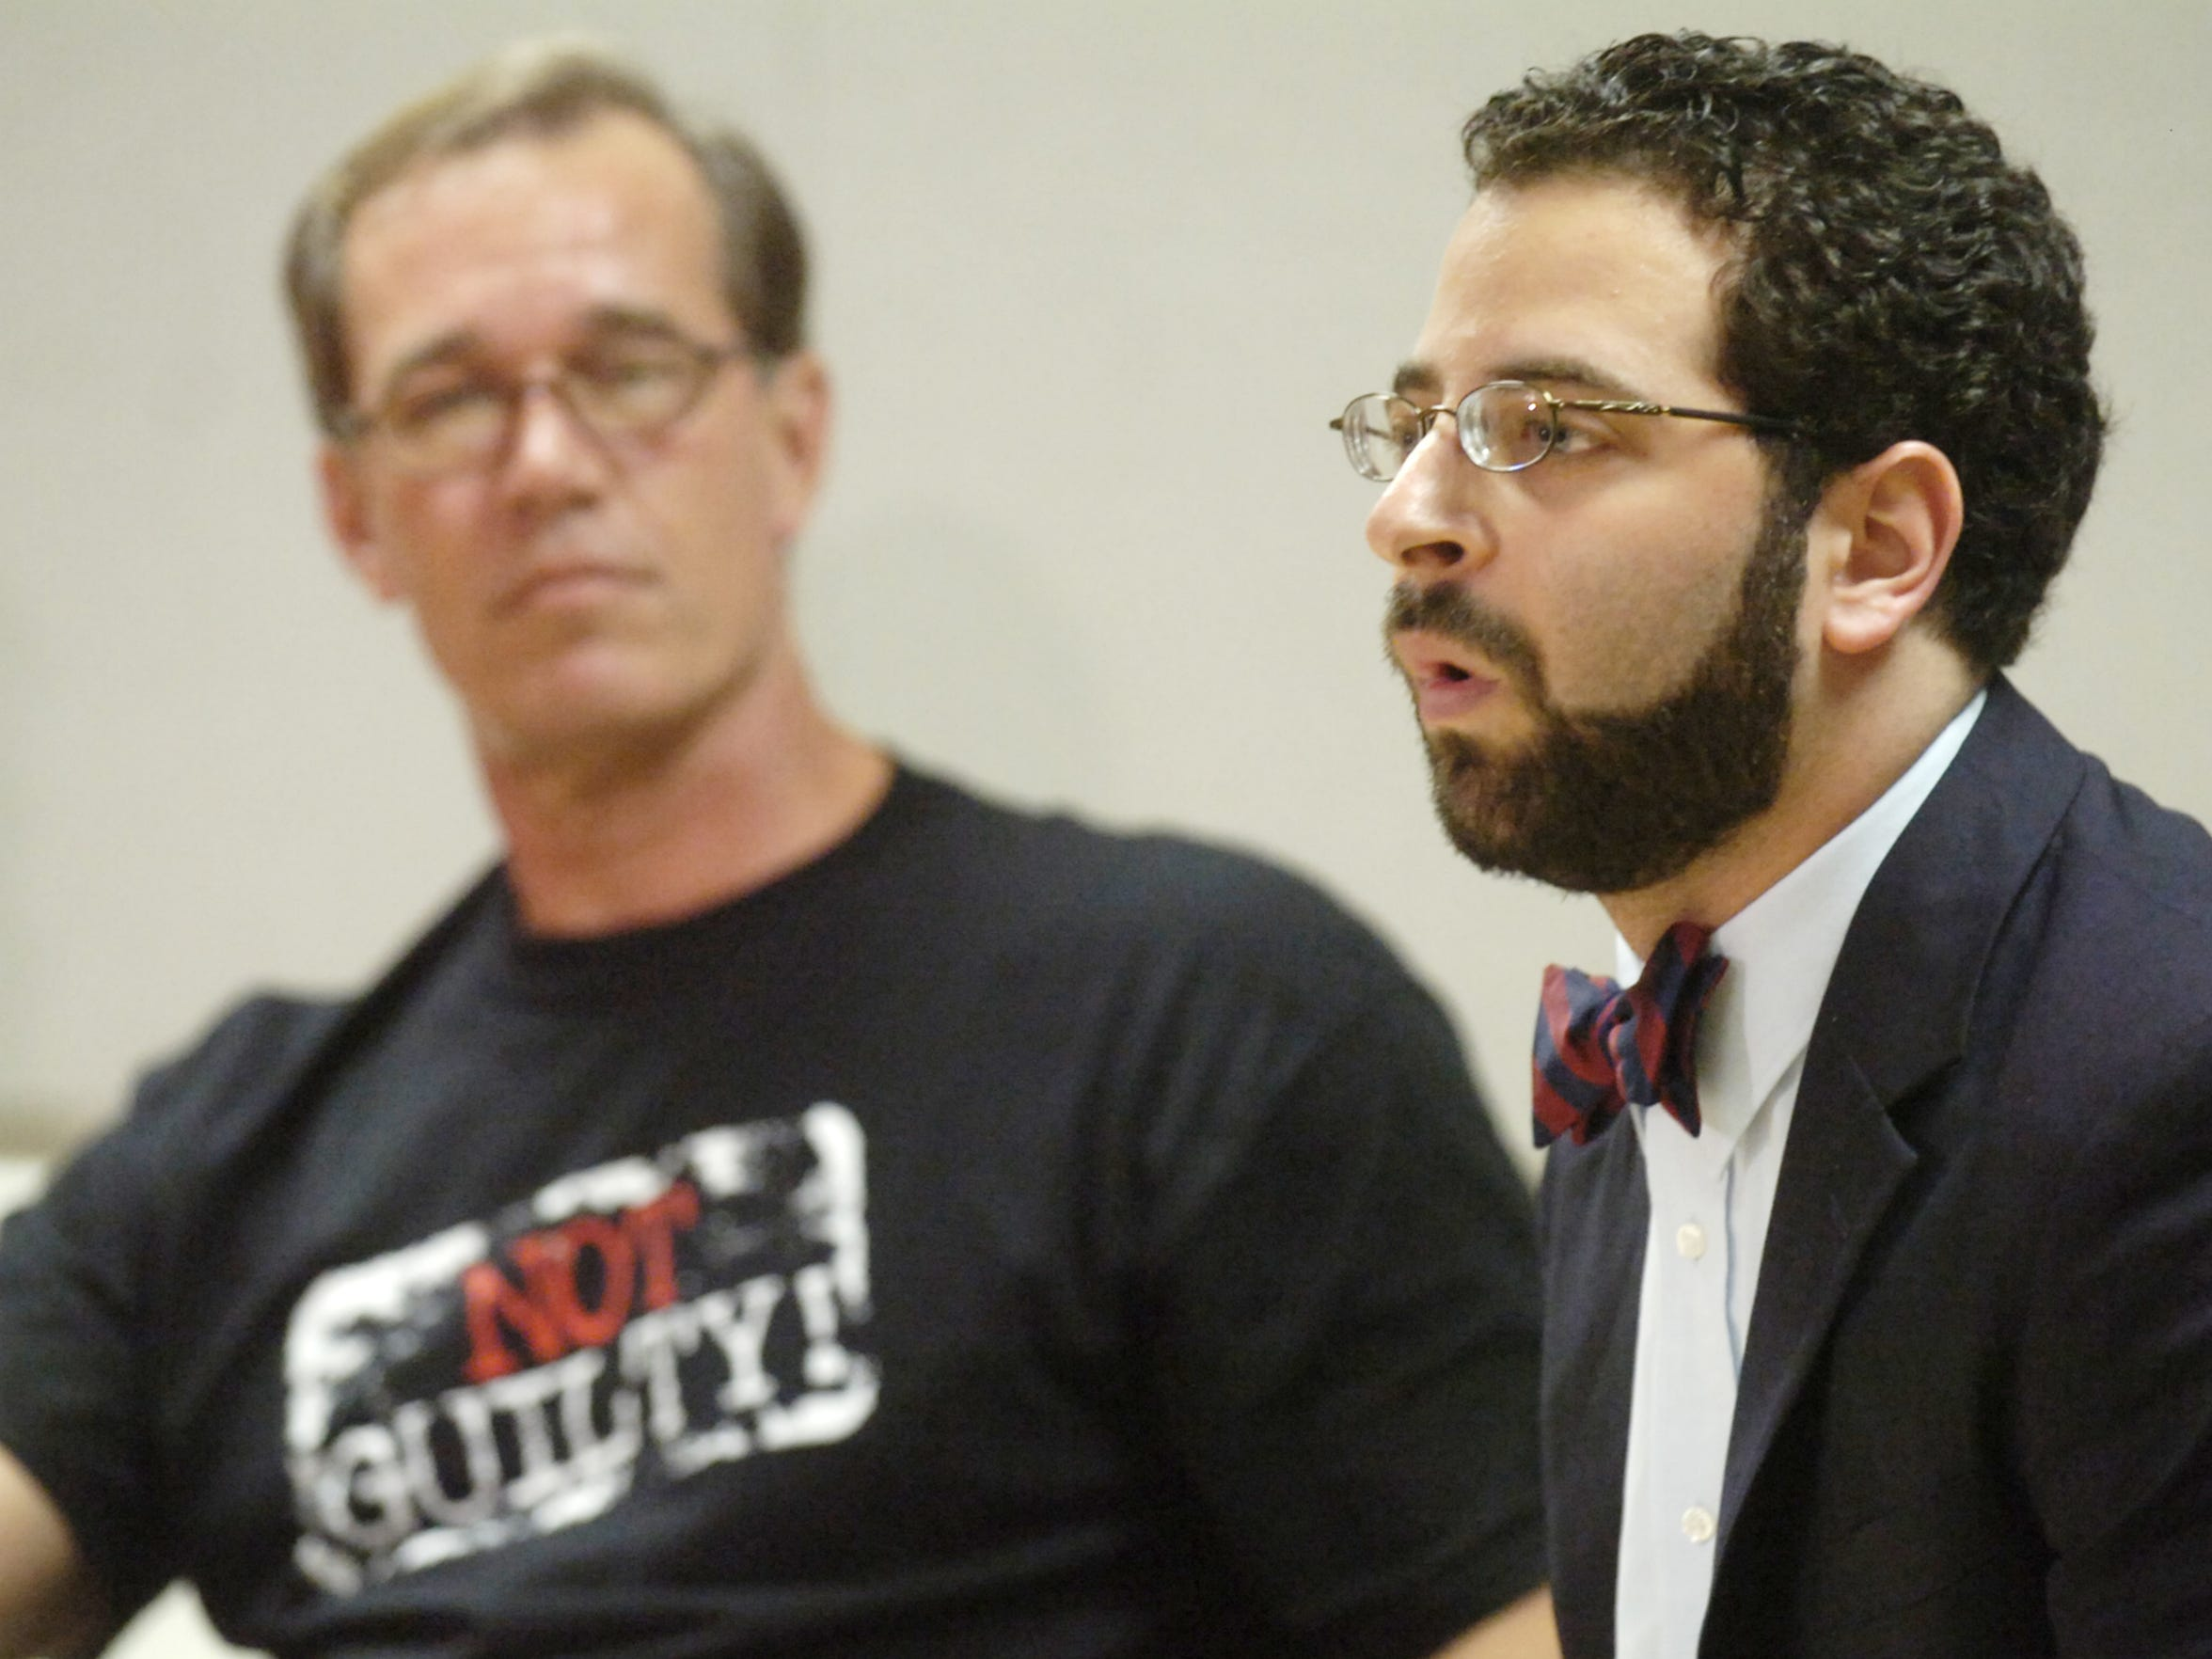 FILE- William Dillon listens as Seth Miller, executive director of the Innocence Project of Florida speaks during a press conference Thursday in Viera, FL Thursday, December 11, 2008.   Dillon was cleared Wednesday of murder charges after spending 27 years in jail.